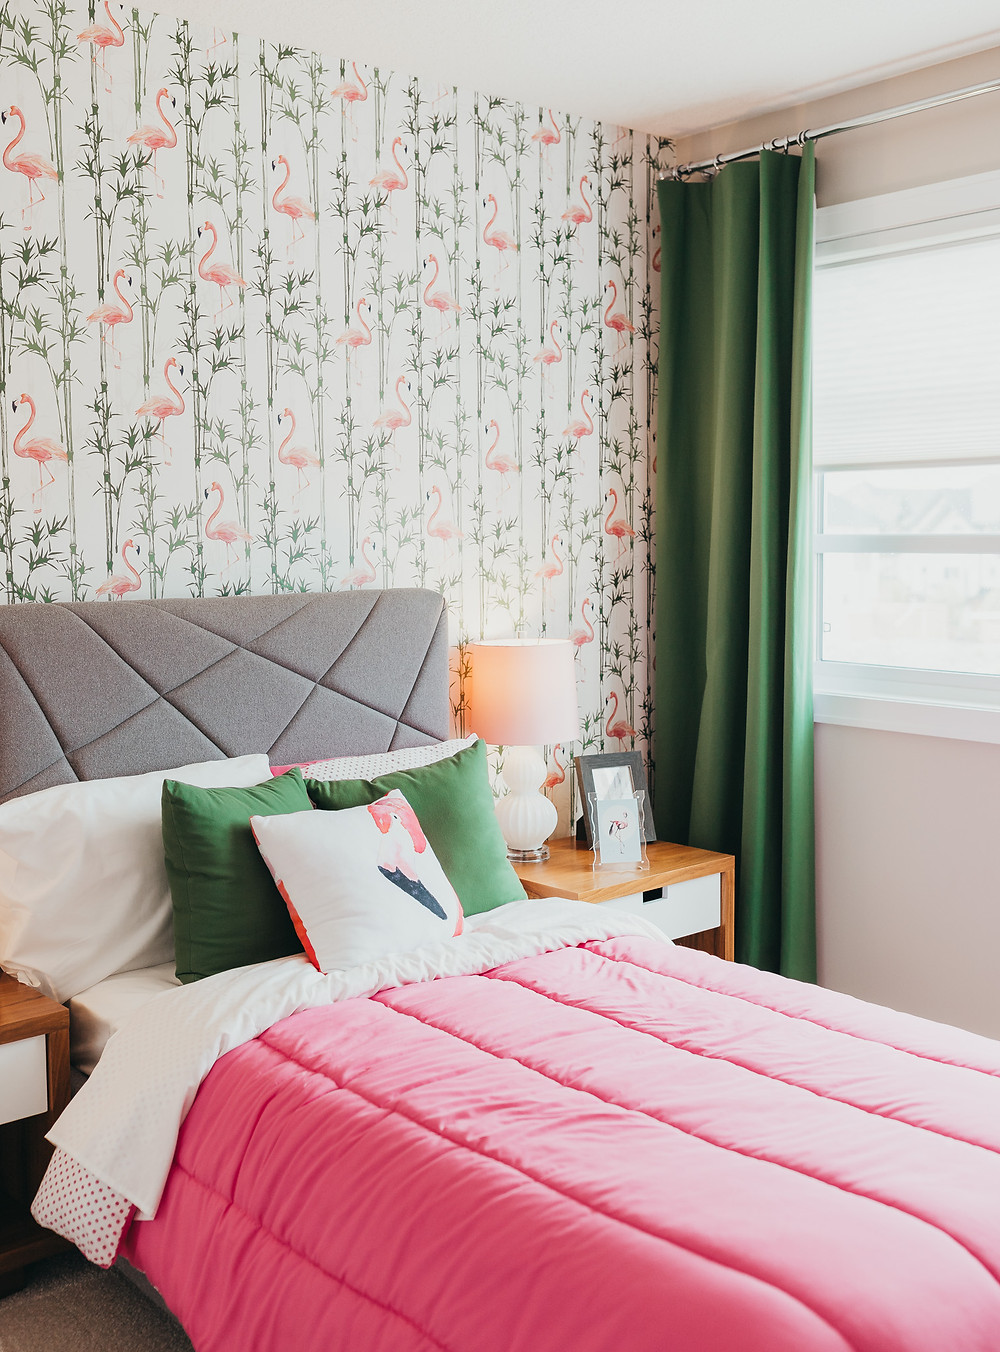 A bedroom decorated with pink and green flamingo wallpaper and pink bedding.